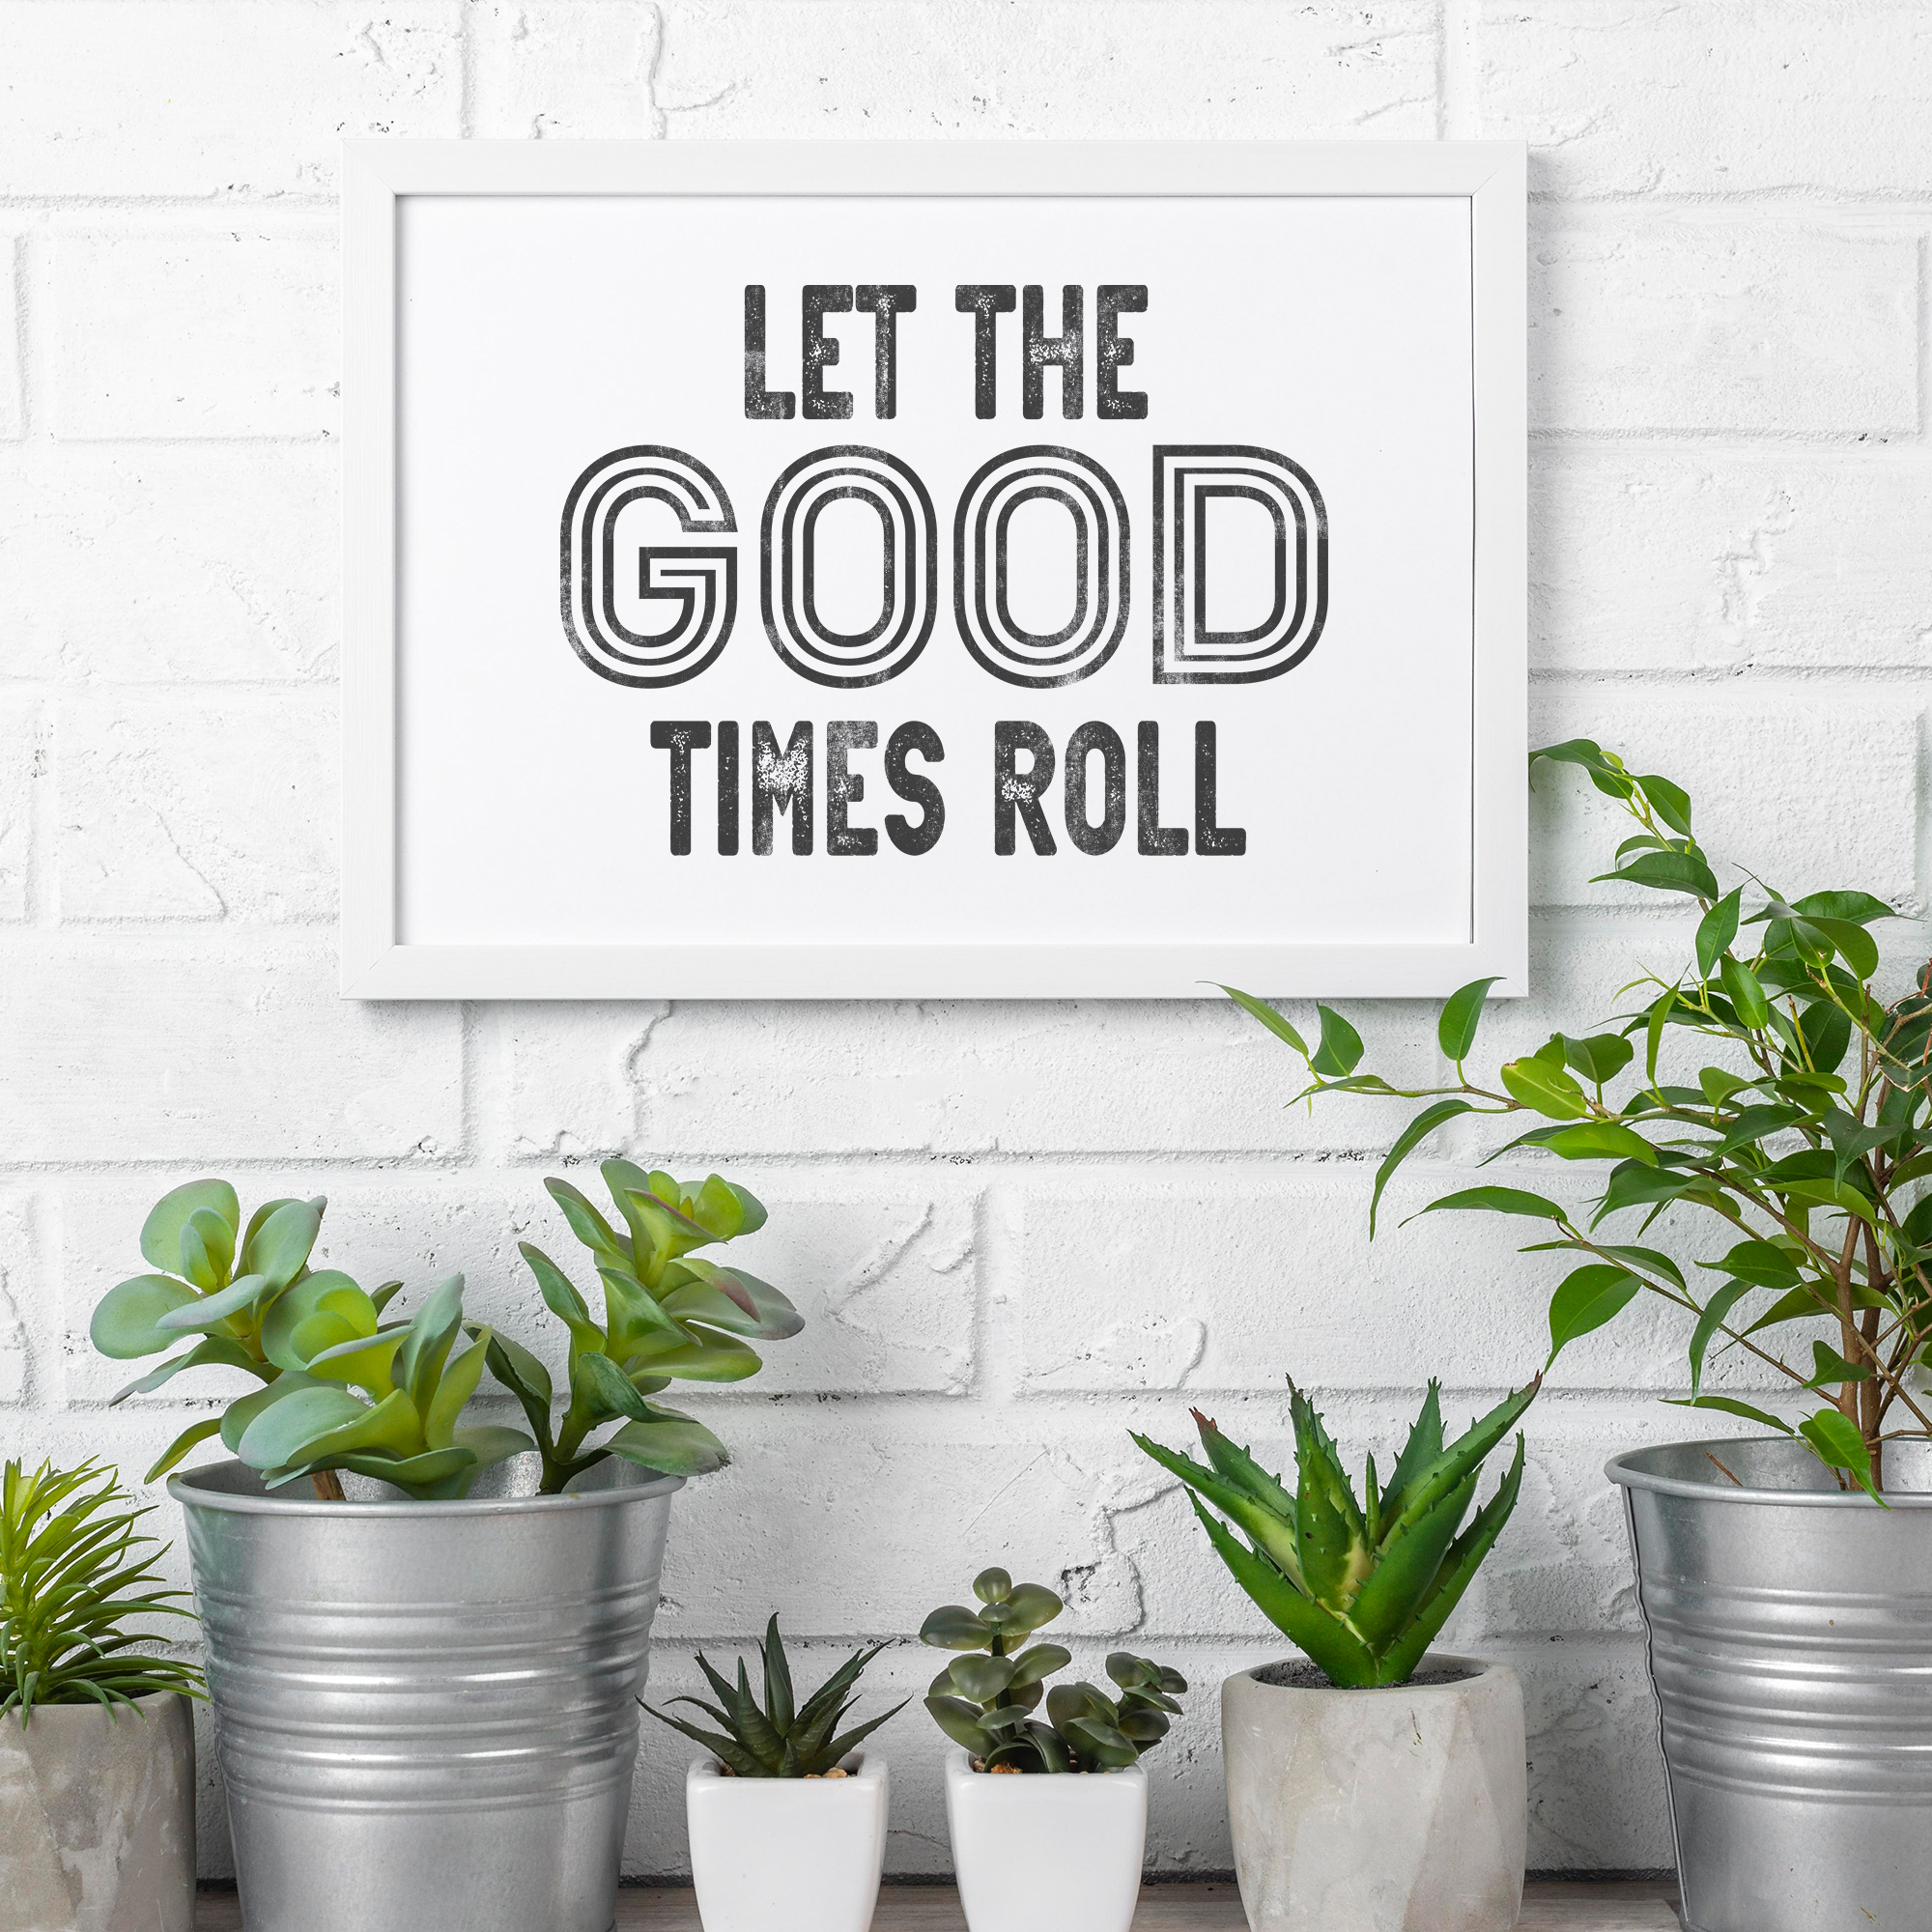 Let the Good Times Roll Mockup